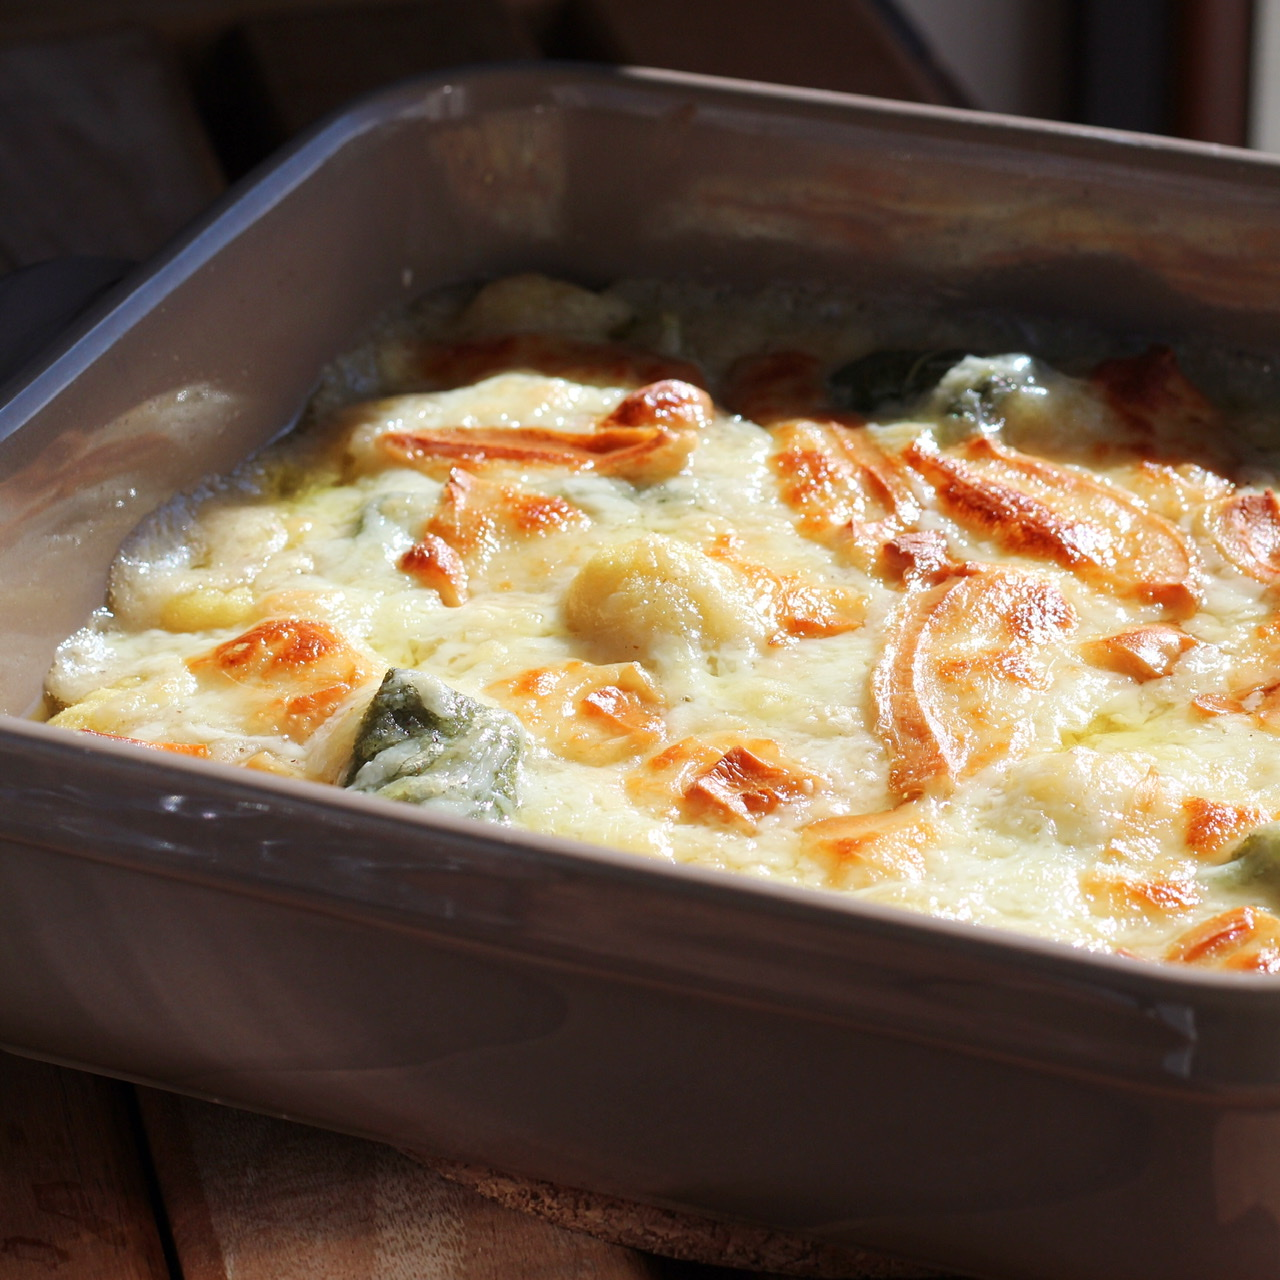 Baked Gnocchi with Sage and Cheese